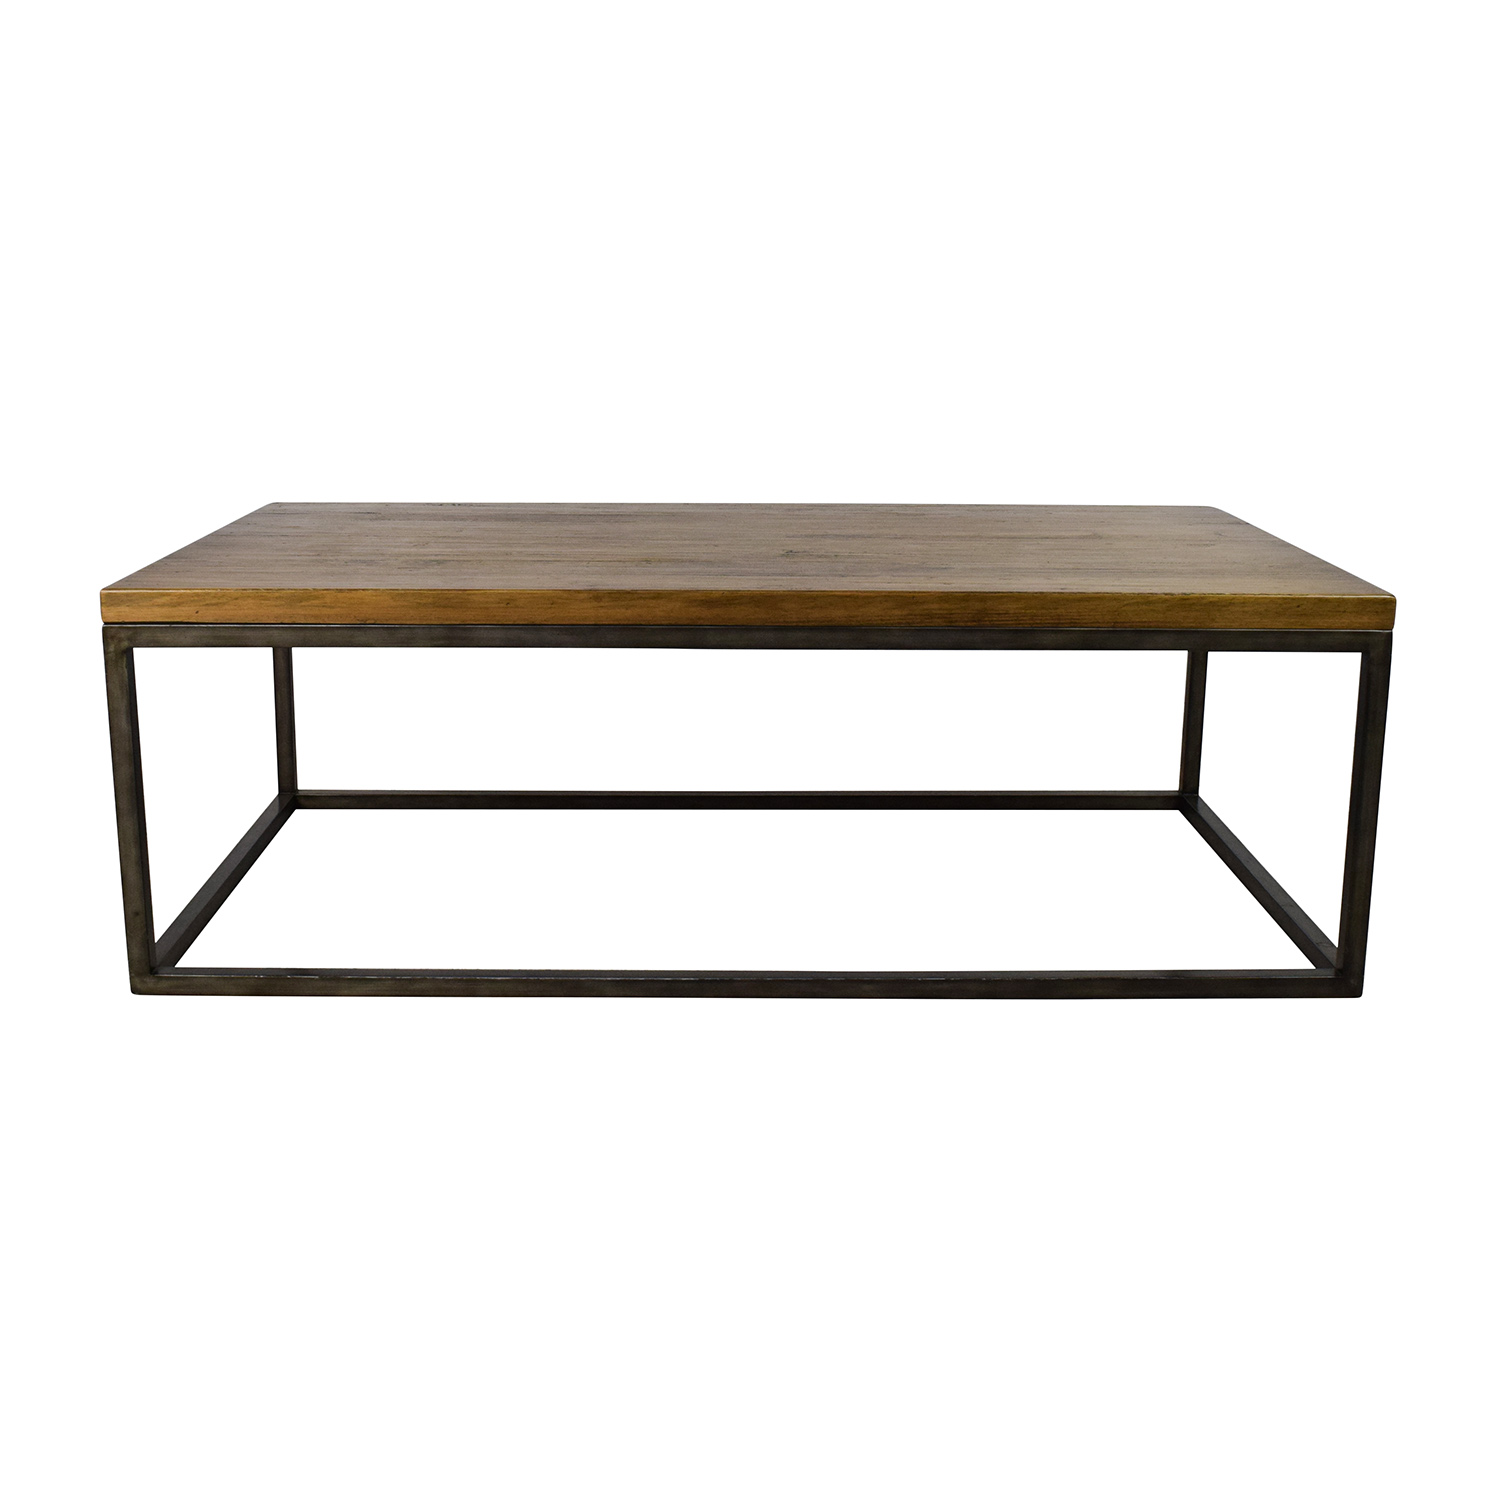 85% OFF Rustic Industrial Wood and Glass Coffee Table Tables